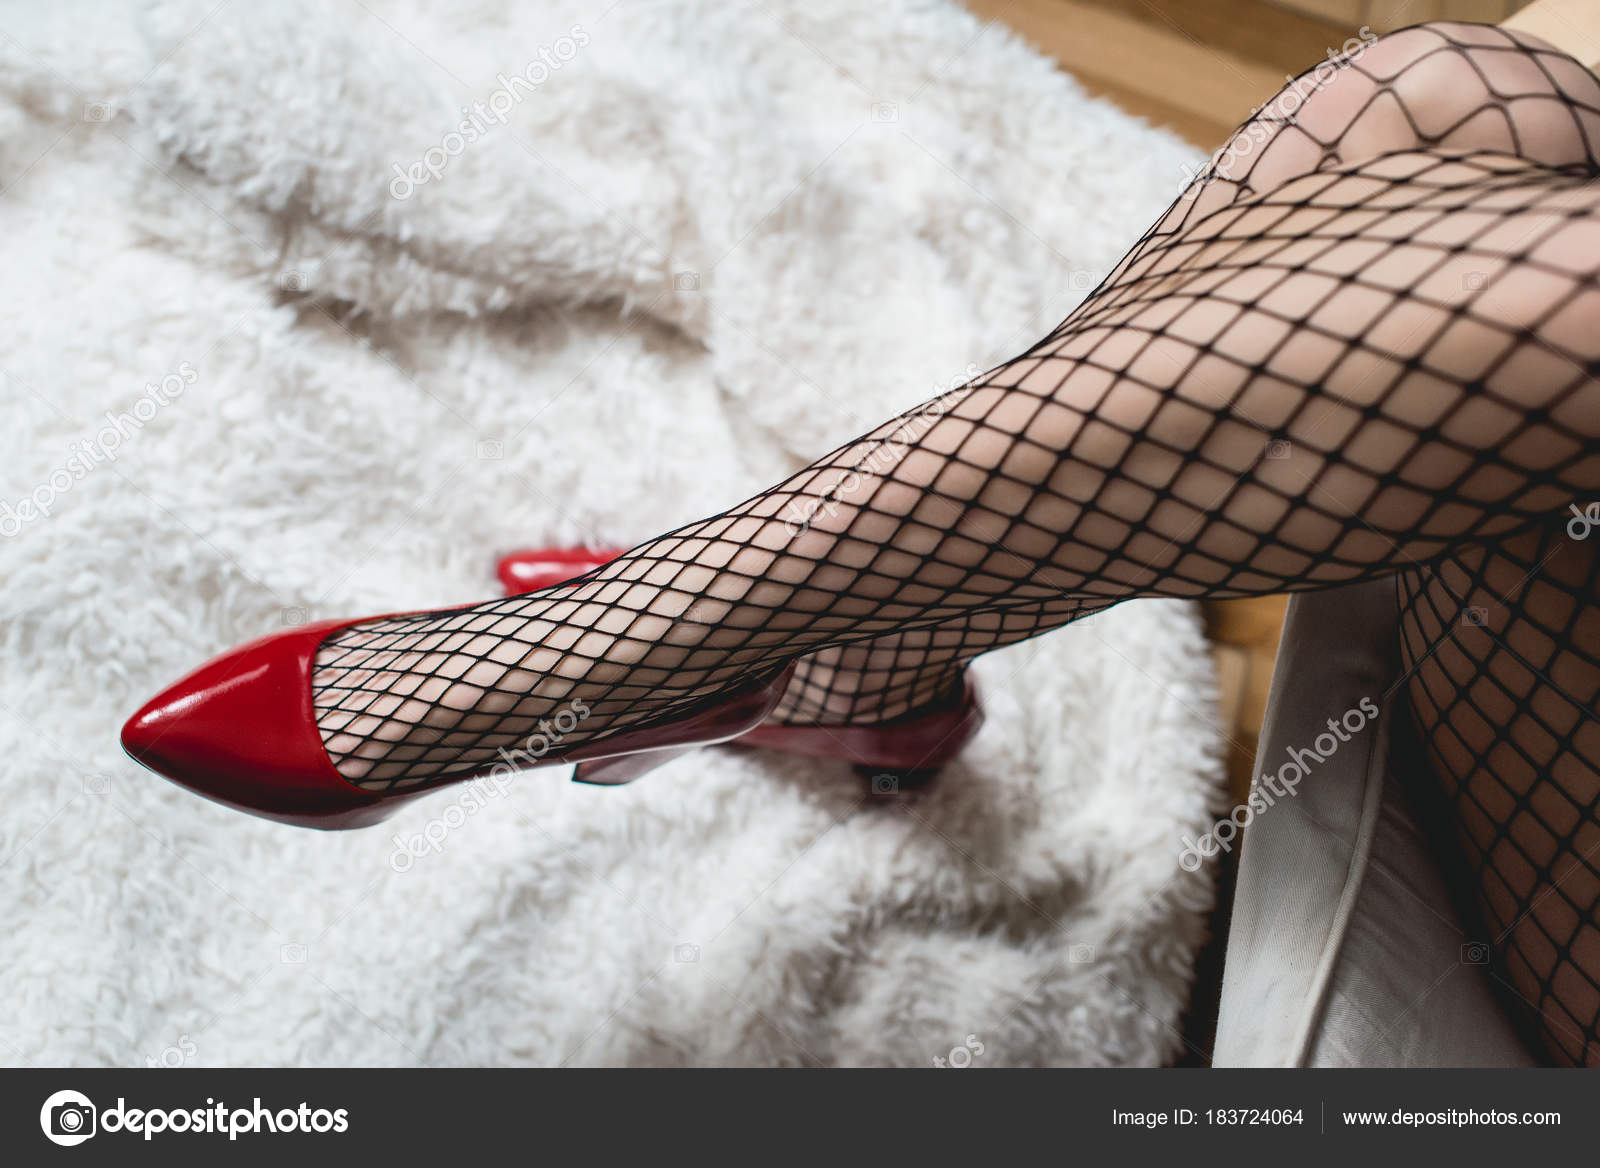 1ef4121fa5f Sexy female legs in high heel red shoes and fishnet stockings. Retro ...